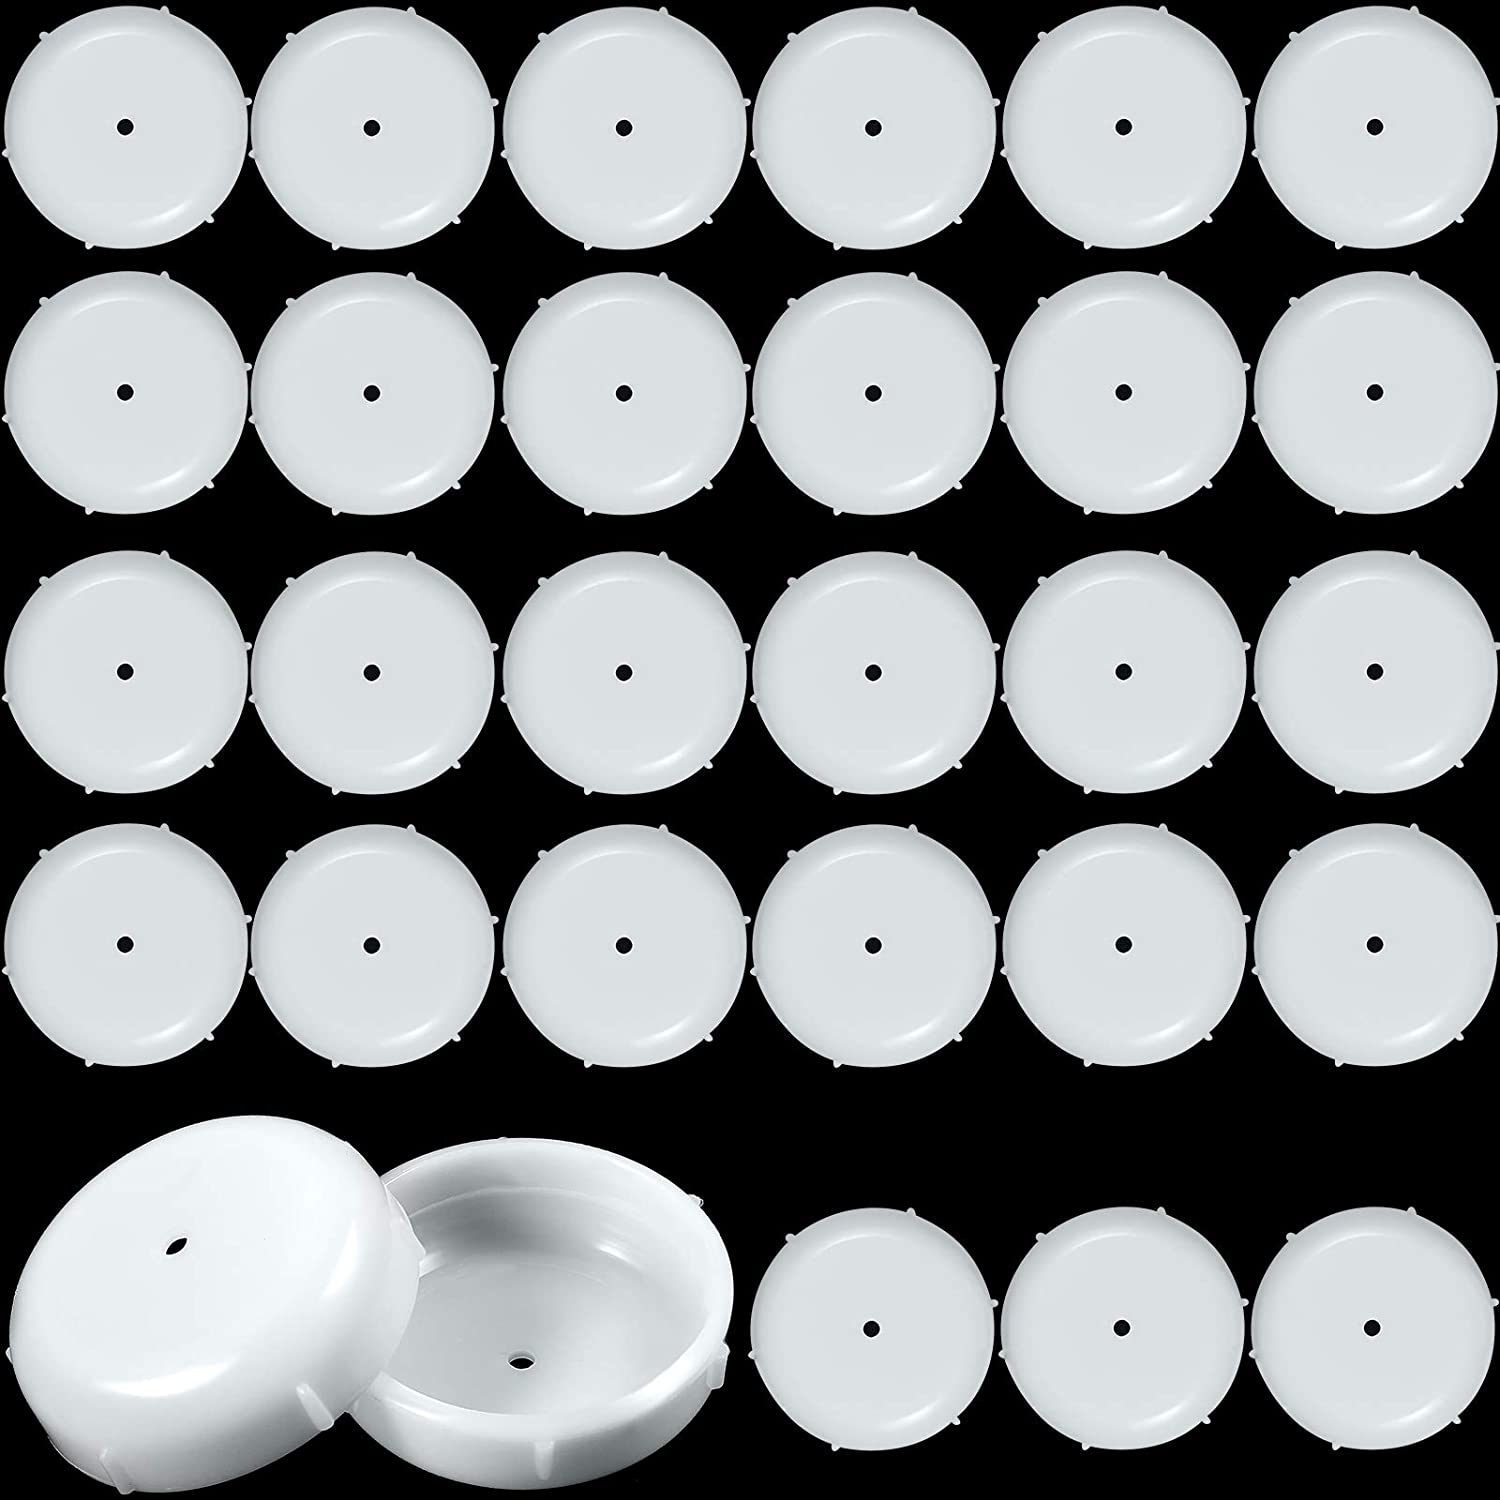 1.5 Inch Patio Furniture Seating Glides/Feet/Caps for Wrought Iron Outdoor Furniture Easy to Install Replacement Chair and Table Feet Glide Protectors/Cap (White,48 Pieces)